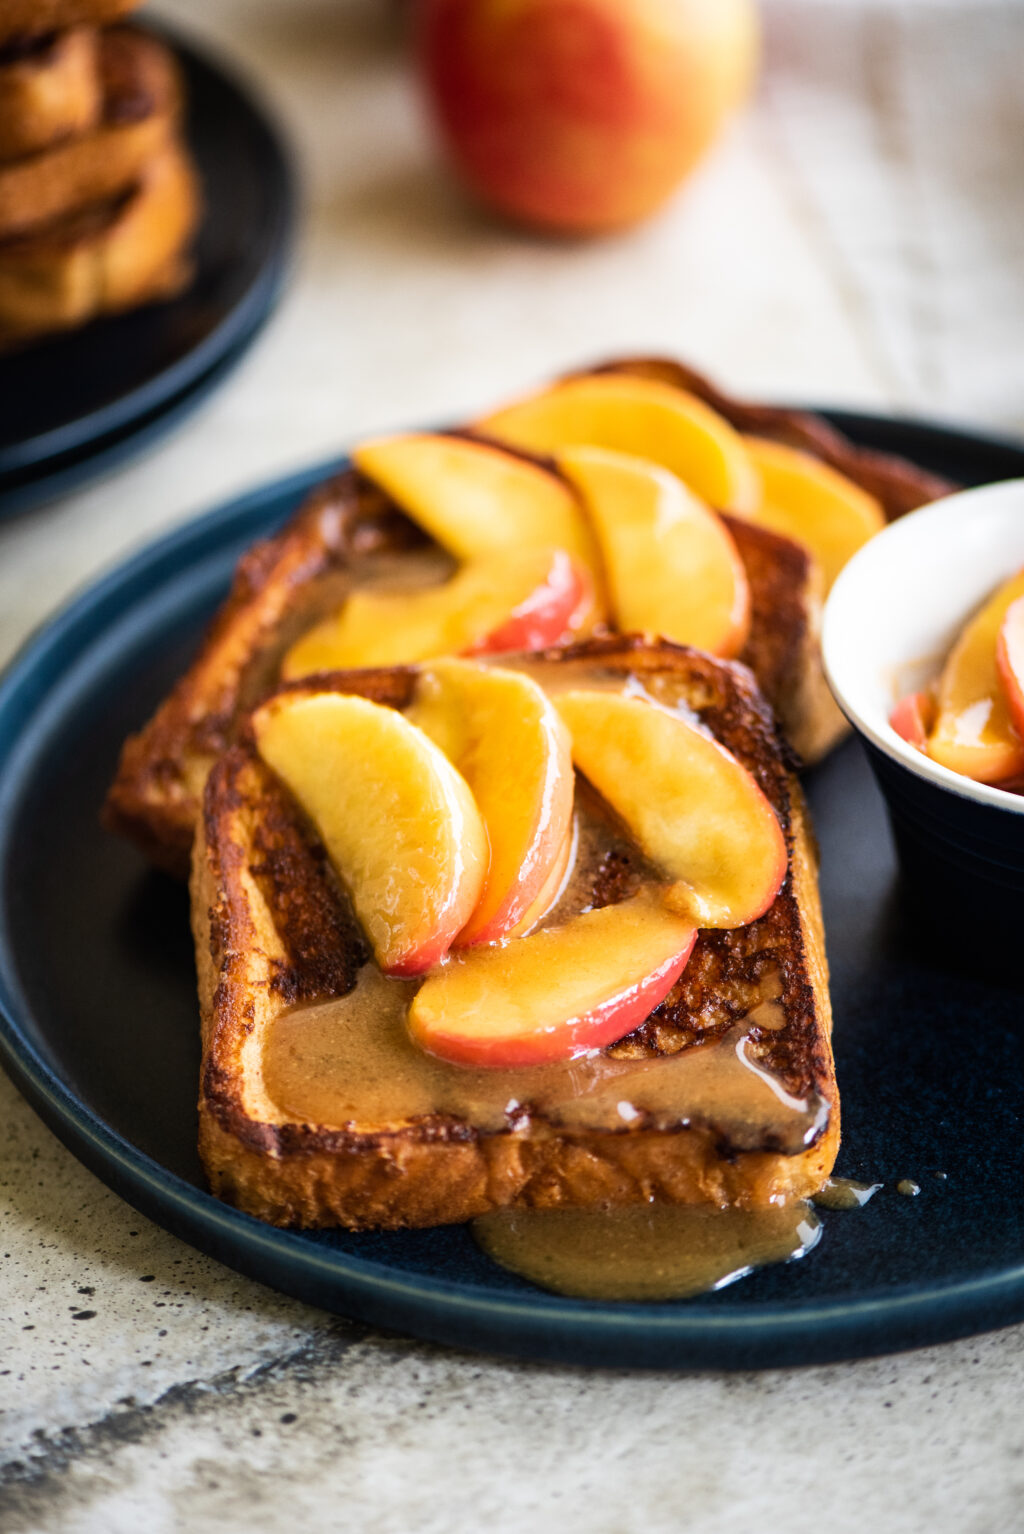 plate of french toast topped with apples